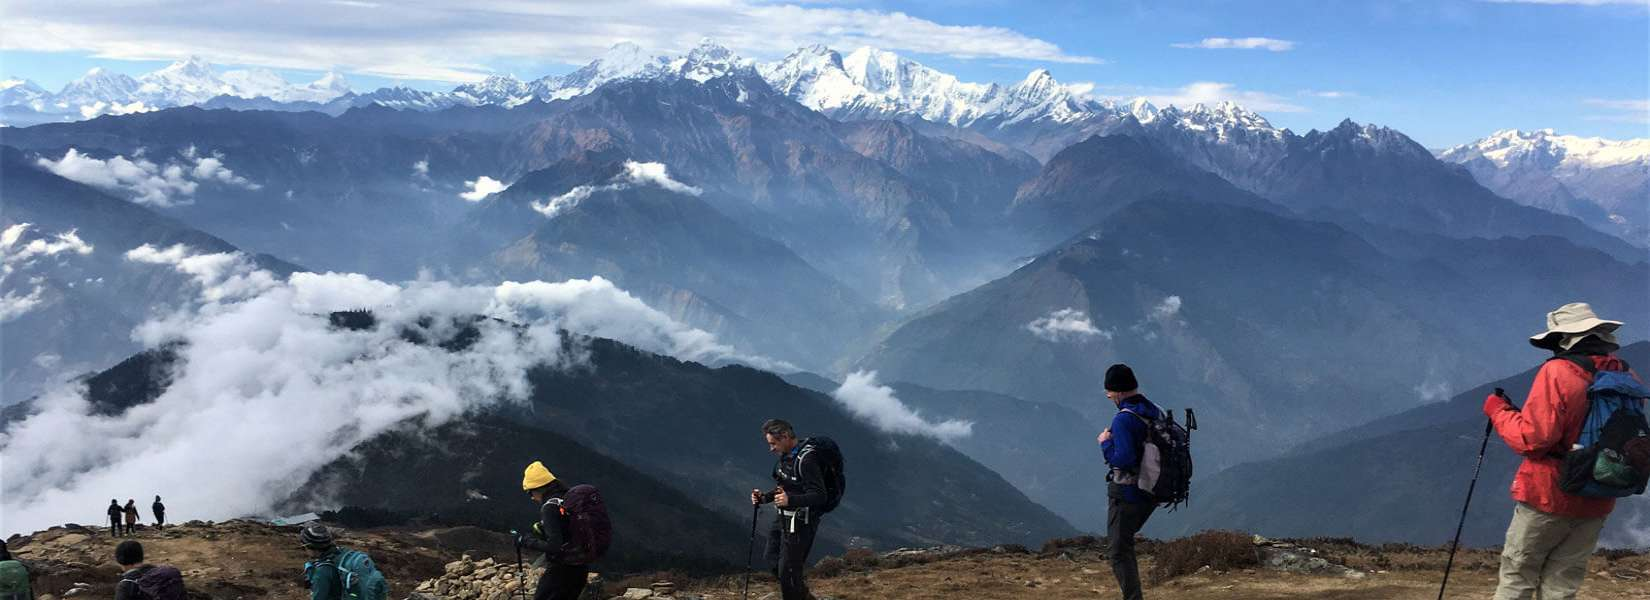 Trekking into the Region of Langtang Gosaikunda